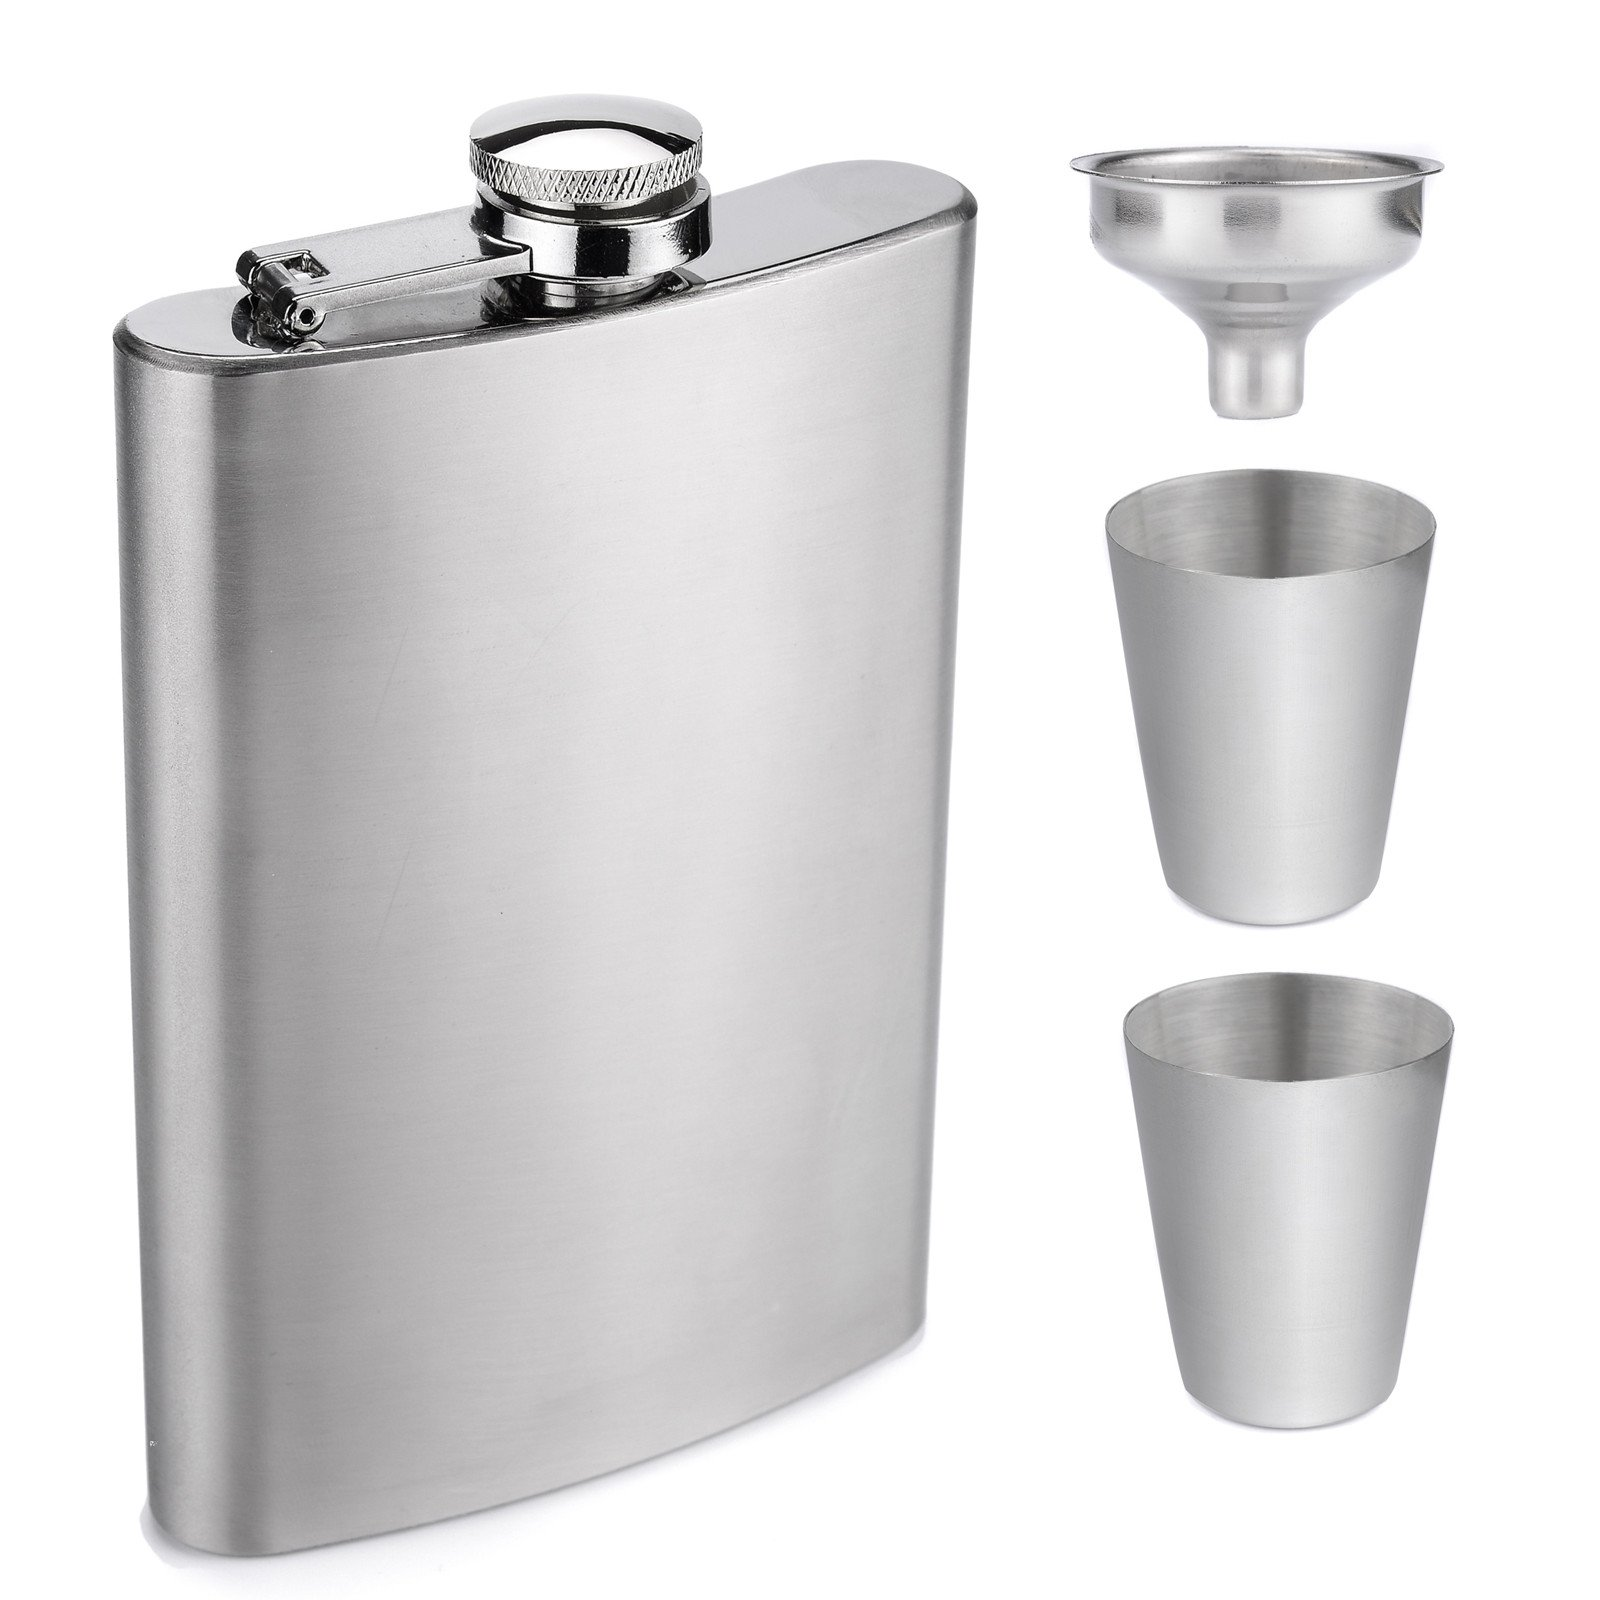 AW 8oz Hip Flask Gift Set - Silver Pocket Flask for Liquor with Gift Box, Can be Engraved